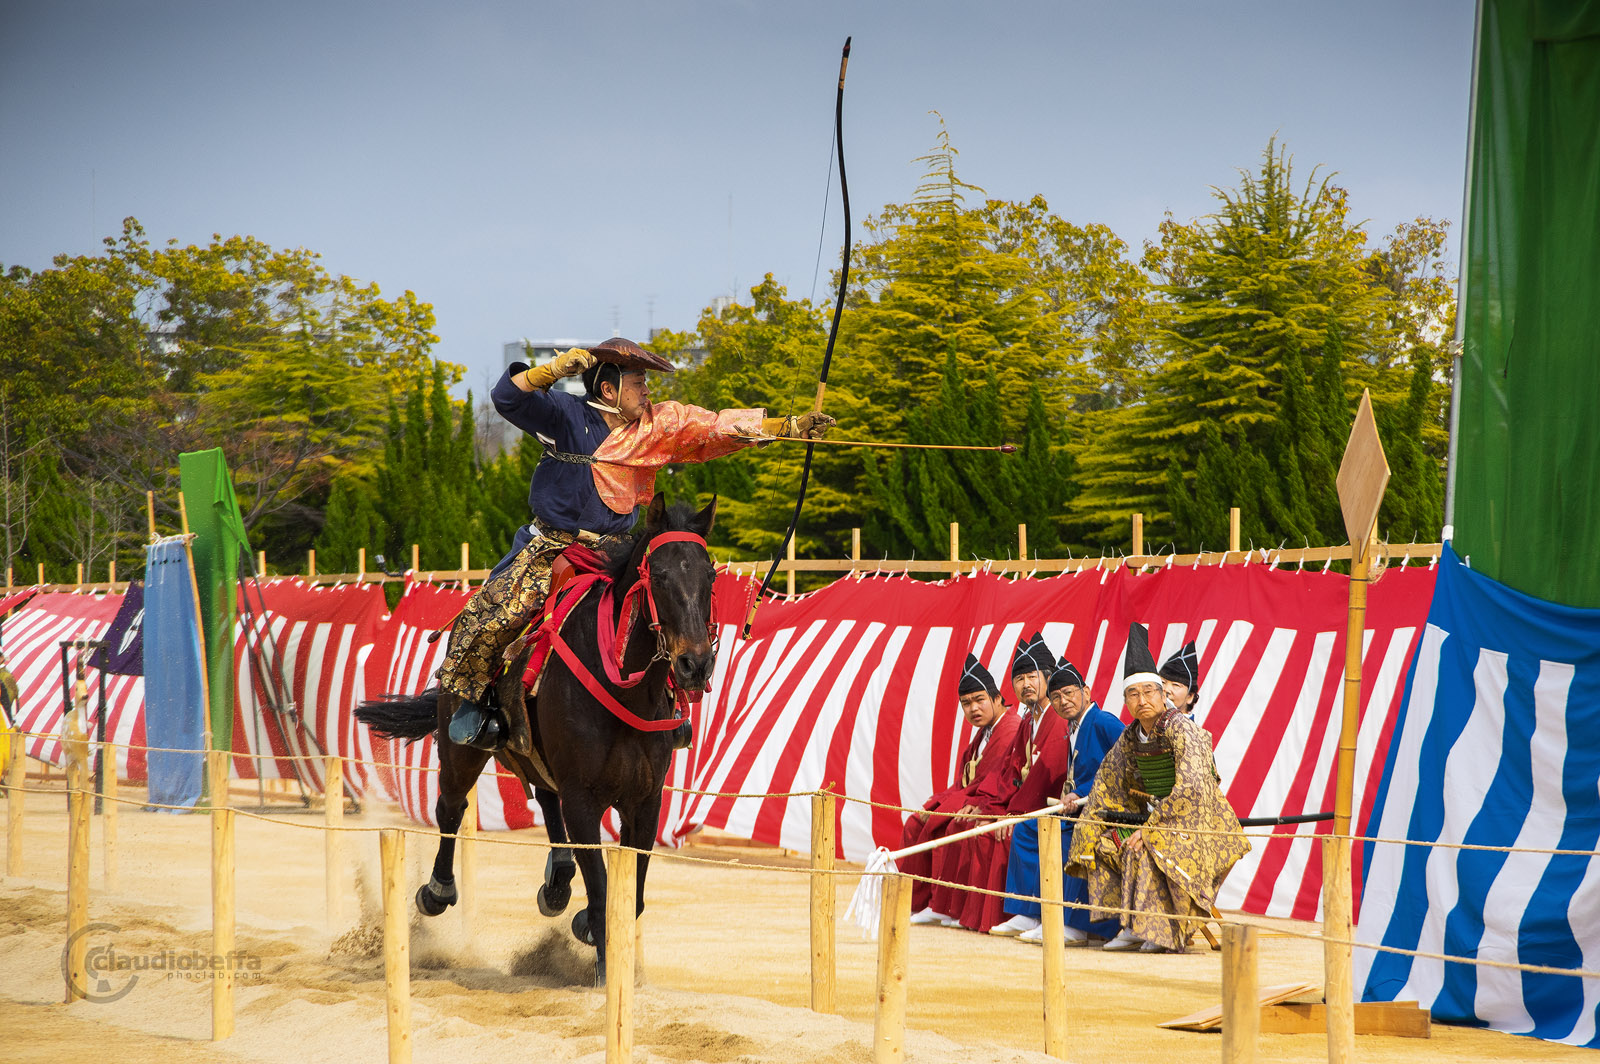 Japan, Yabusame, Traditional mounted archery, archer shoots arrow